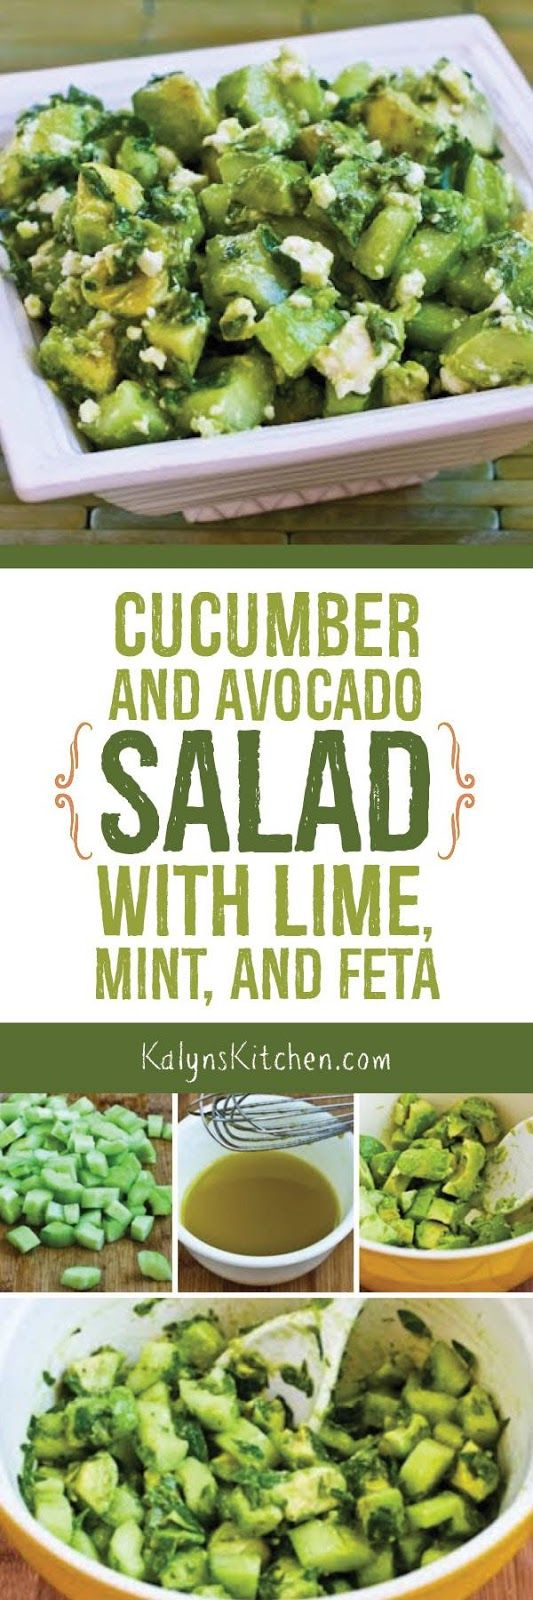 Cucumber and Avocado Salad with Lime, Mint, and Feta is the perfect summer side dish. So easy! So Good! and this tasty salad is low-carb, gluten-free, and South Beach Diet friendly. [found on KalynsKitchen.com]